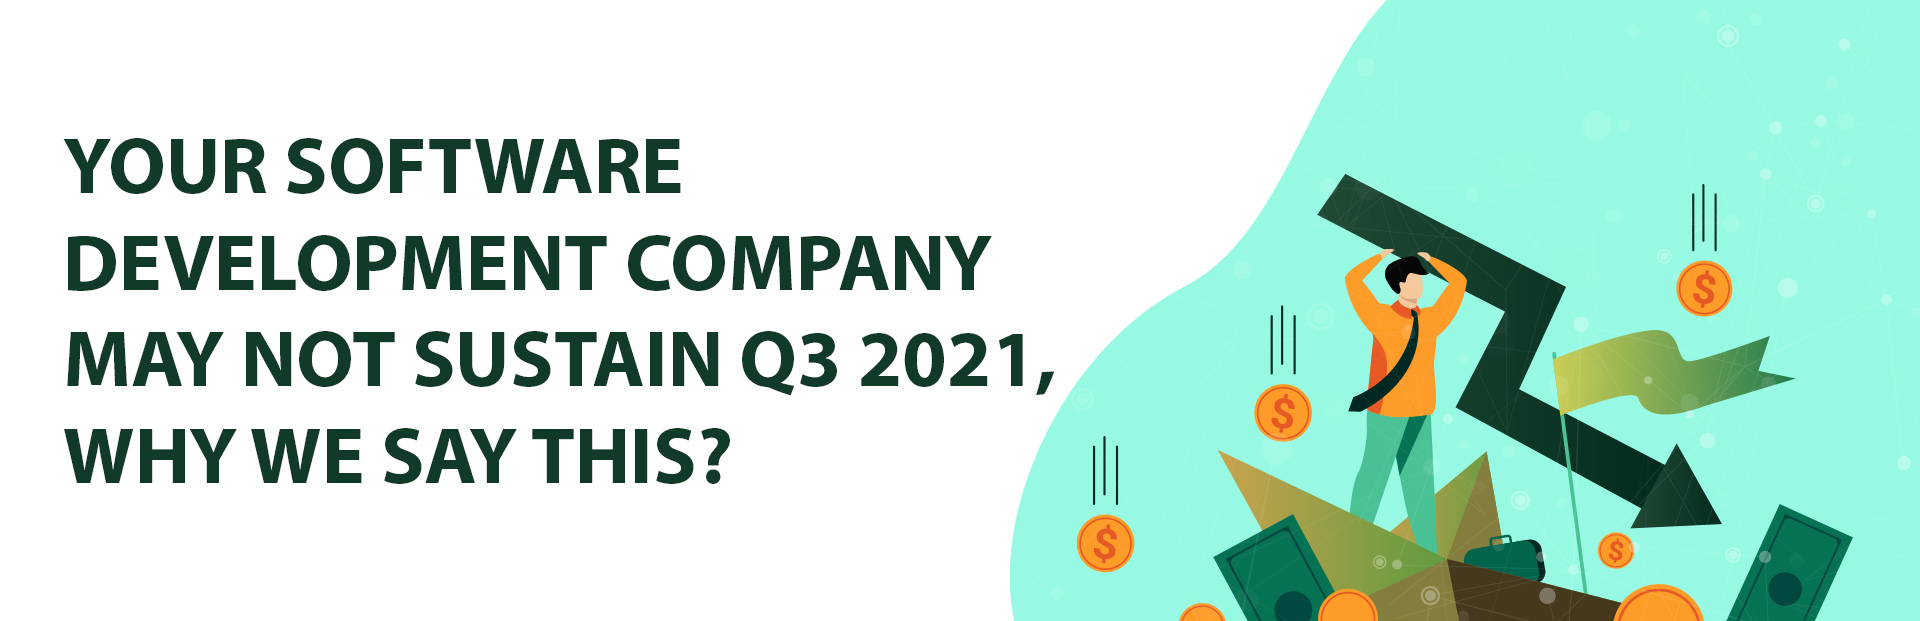 Your software development company may not sustain Q3 2021, why we say this?